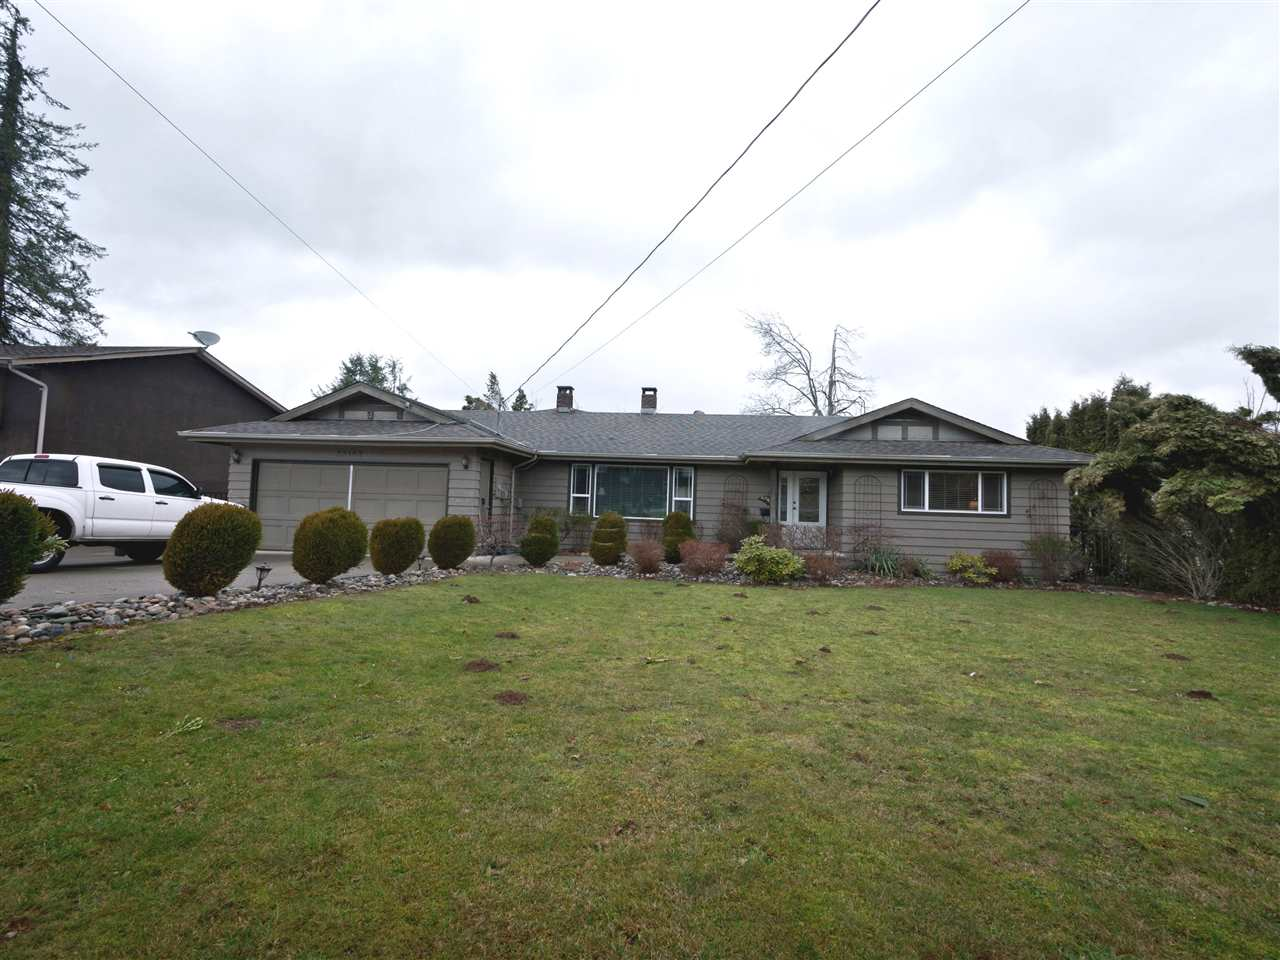 Photo 5: Photos: 33157 CHERRY Avenue in Mission: Mission BC House for sale : MLS® # R2236874